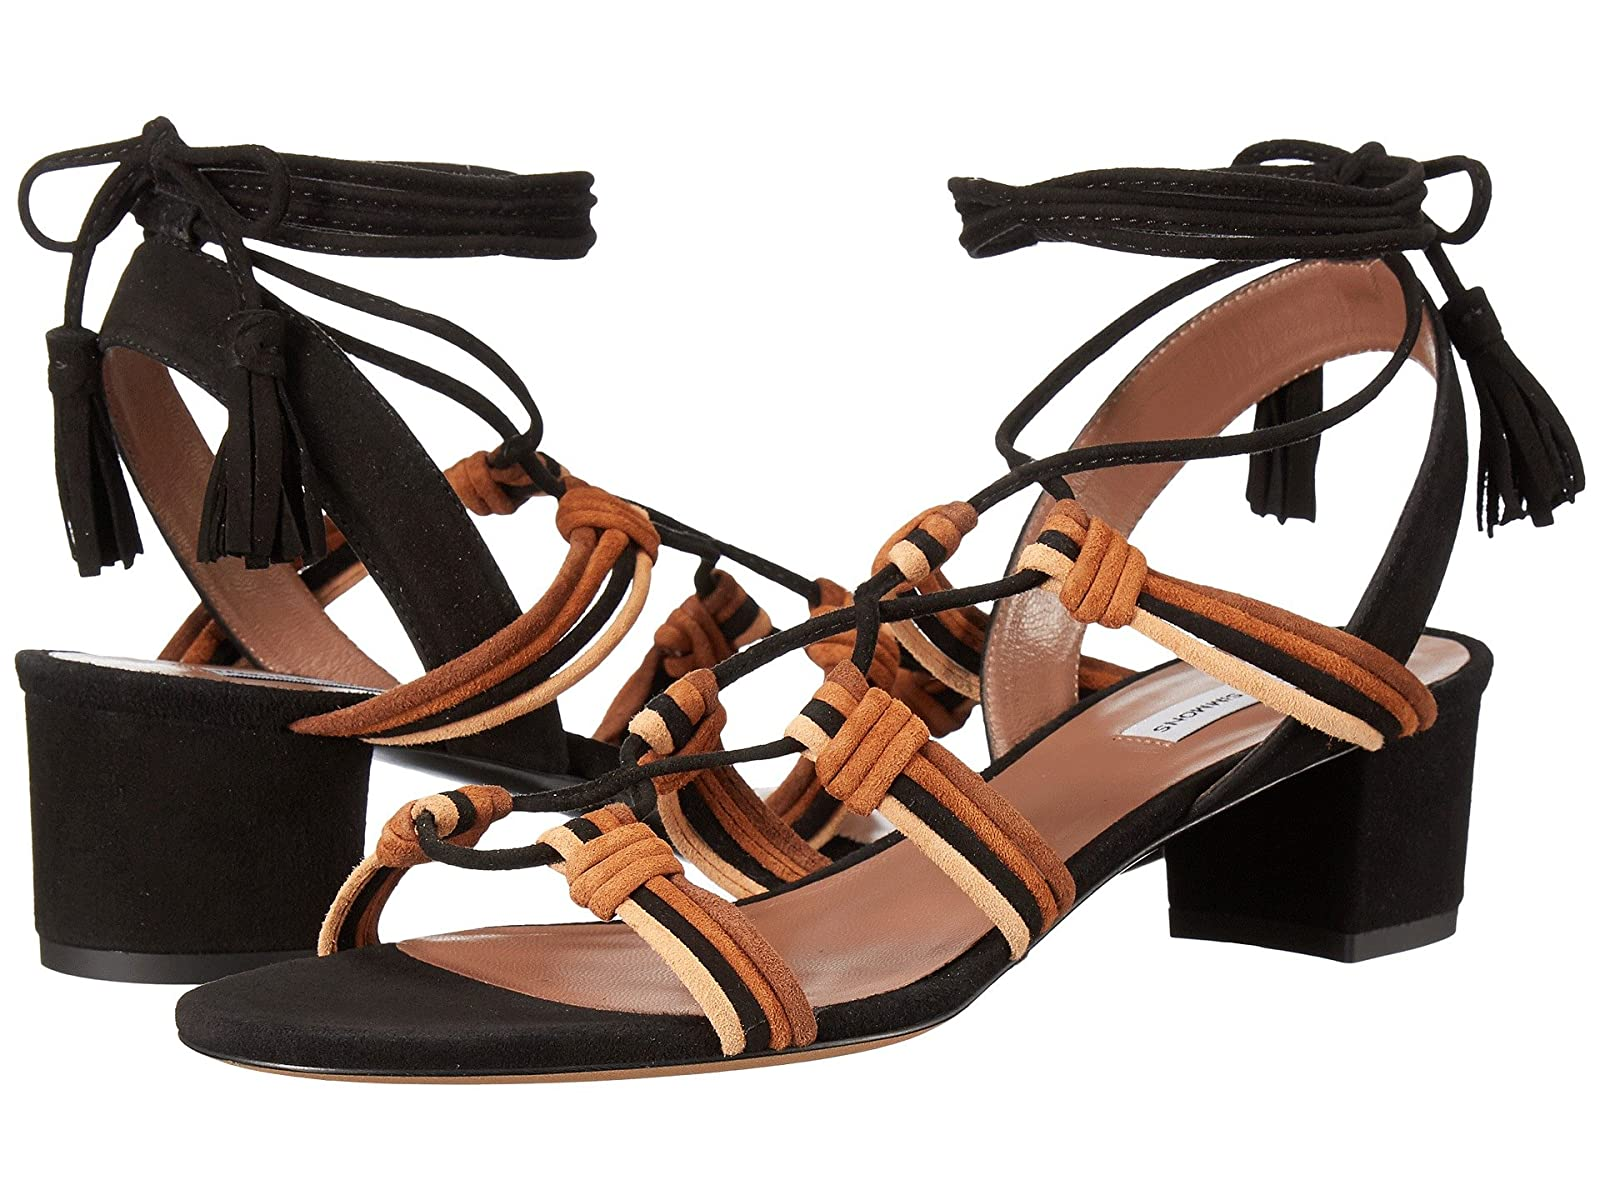 Tabitha Simmons MendiCheap and distinctive eye-catching shoes